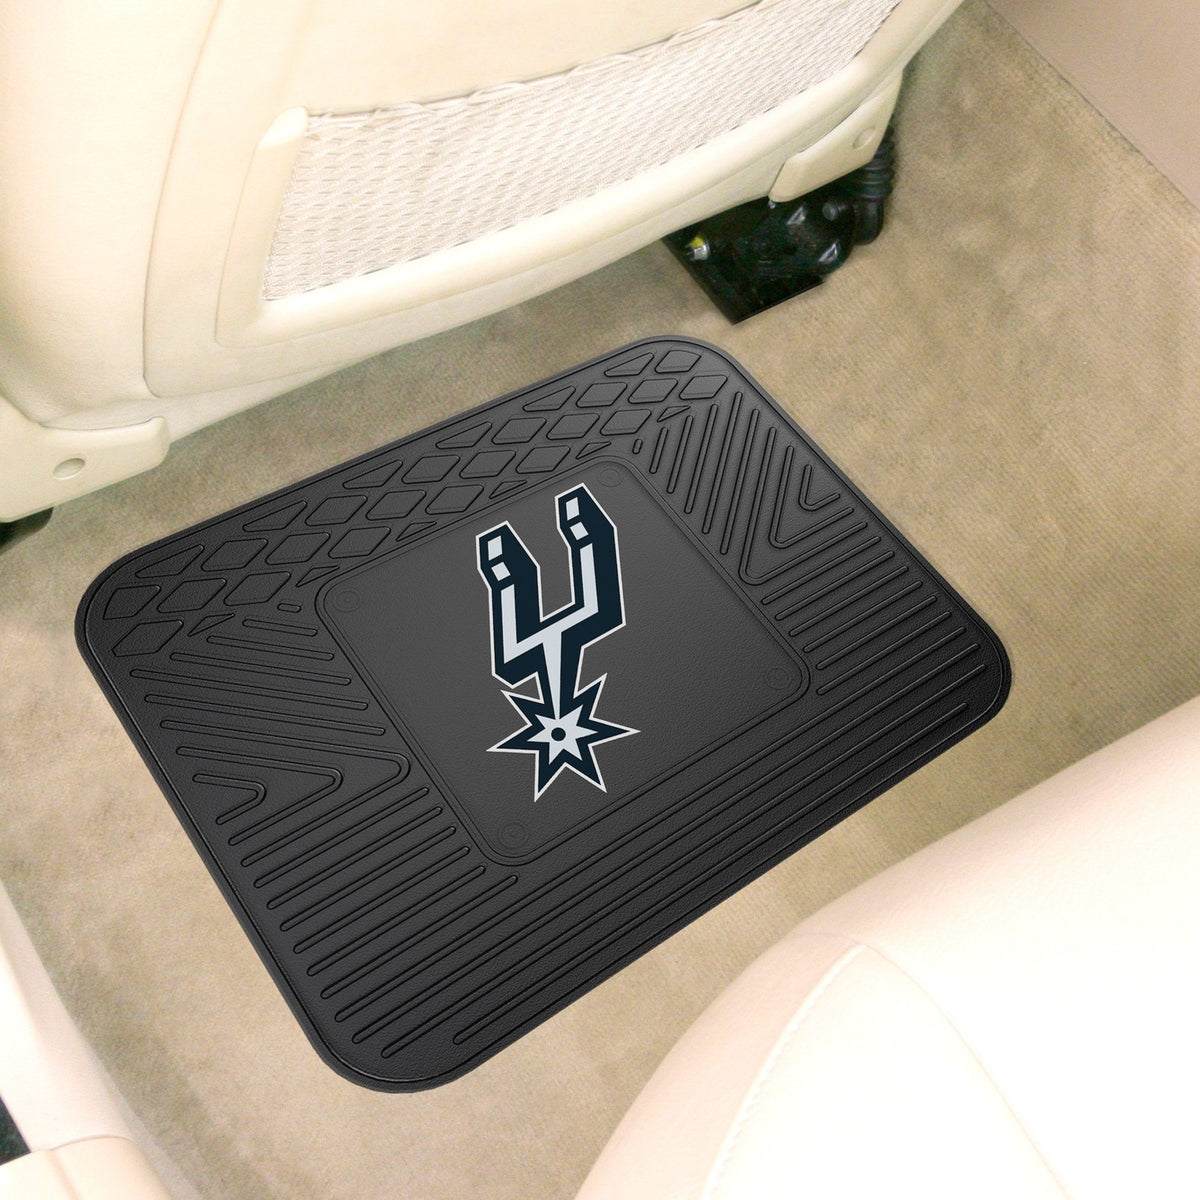 NBA - Utility Mat NBA Mats, Rear Car Mats, Utility Mat, NBA, Auto Fan Mats San Antonio Spurs